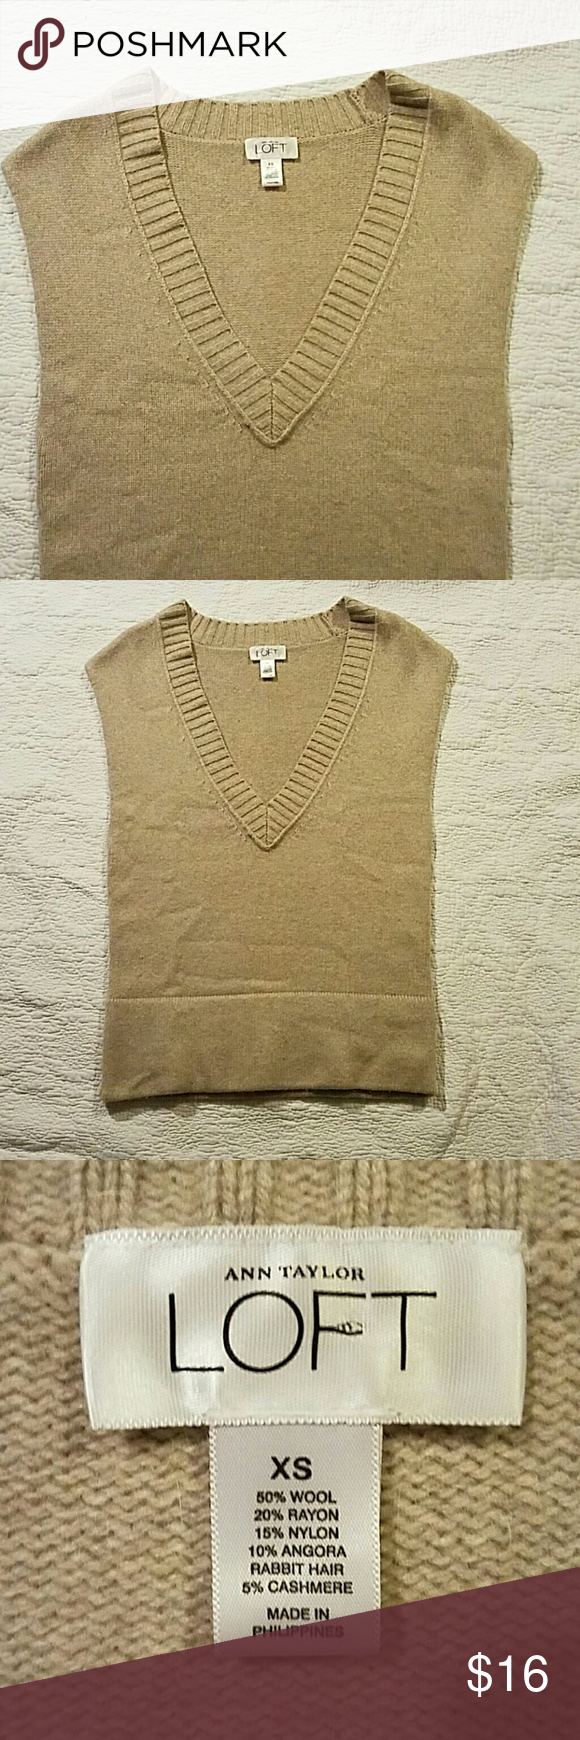 Ann Taylor Loft sleeveless sweater Super soft. Excellent condition LOFT Sweaters V-Necks